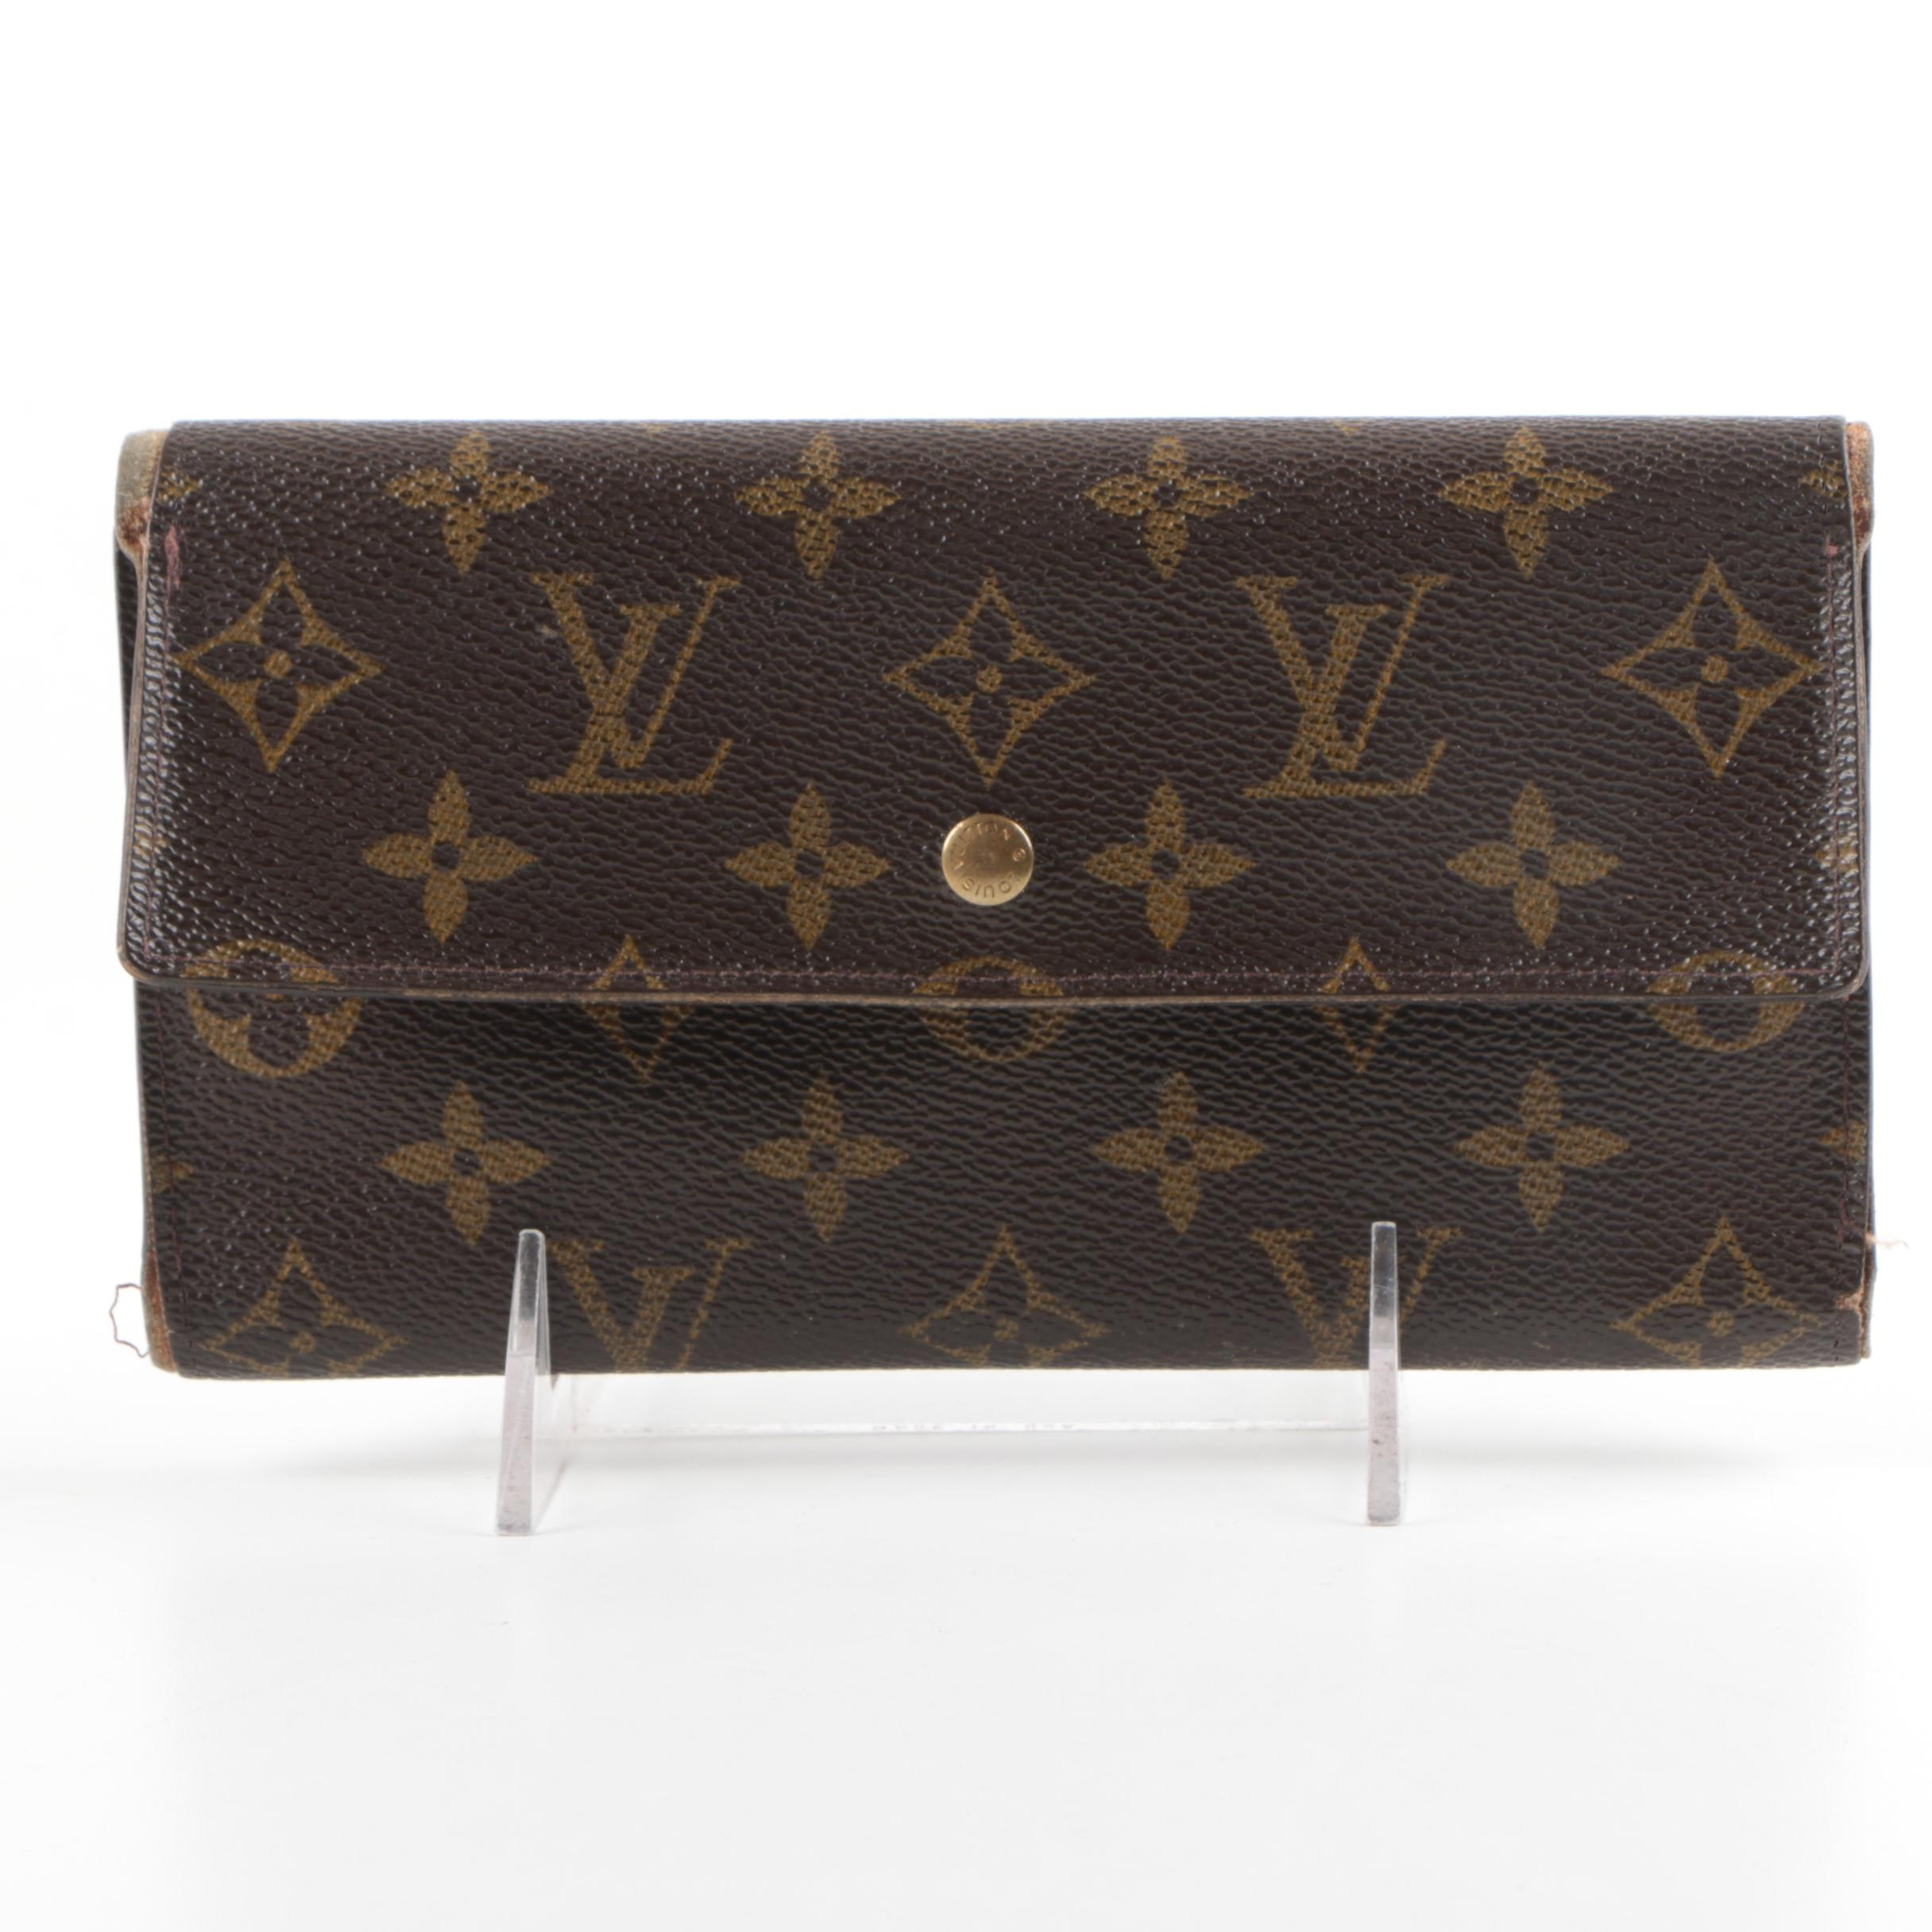 Louis Vuitton of Paris Signature Monogram Canvas Clutch Wallet